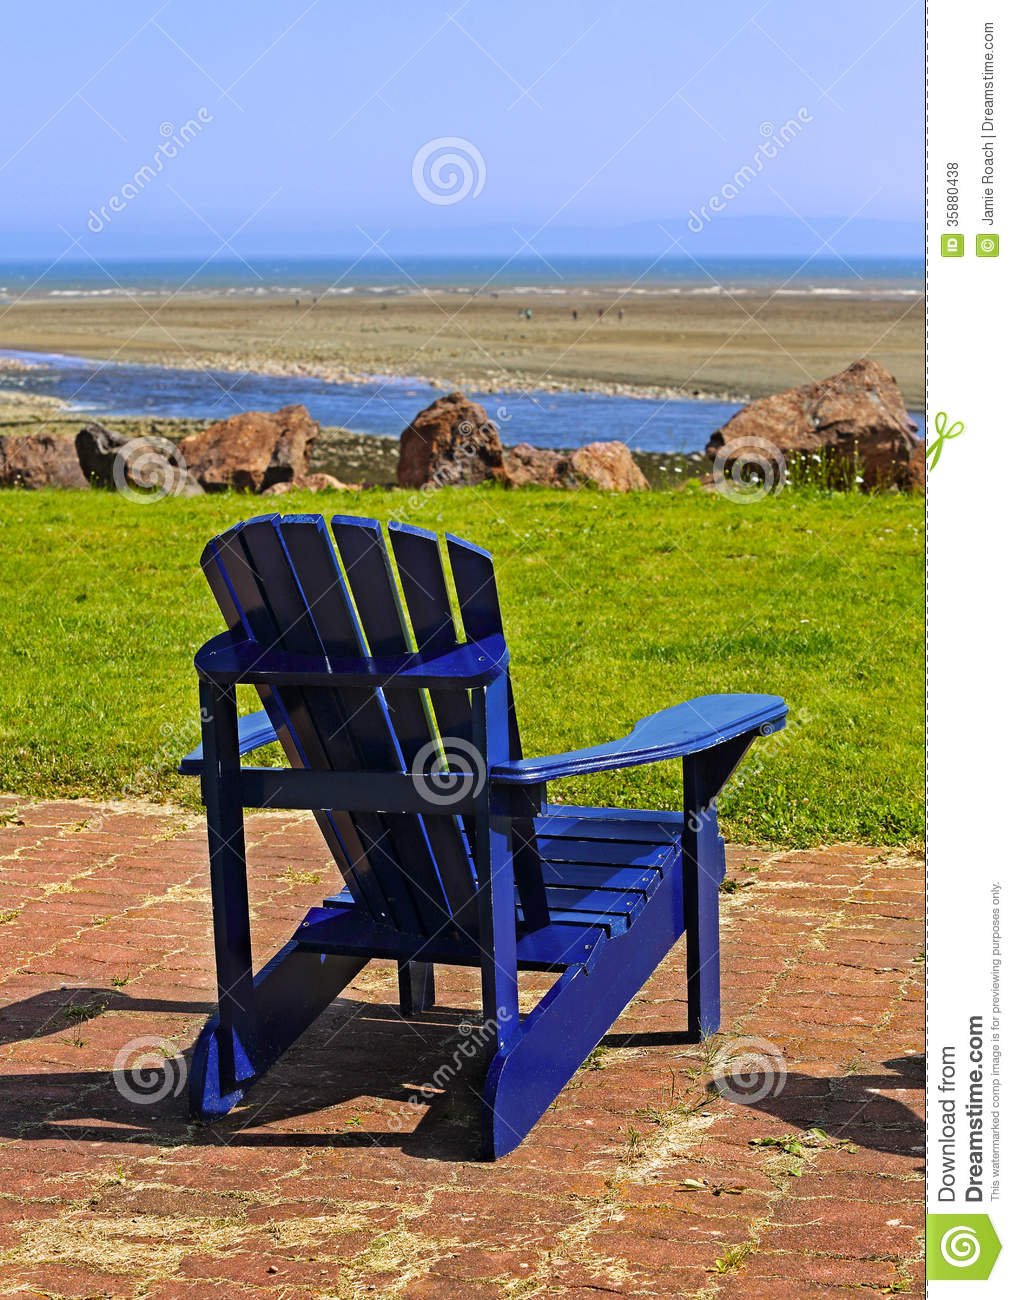 Adirondack Beach Chair Clip Art Blue beach chair summer scene